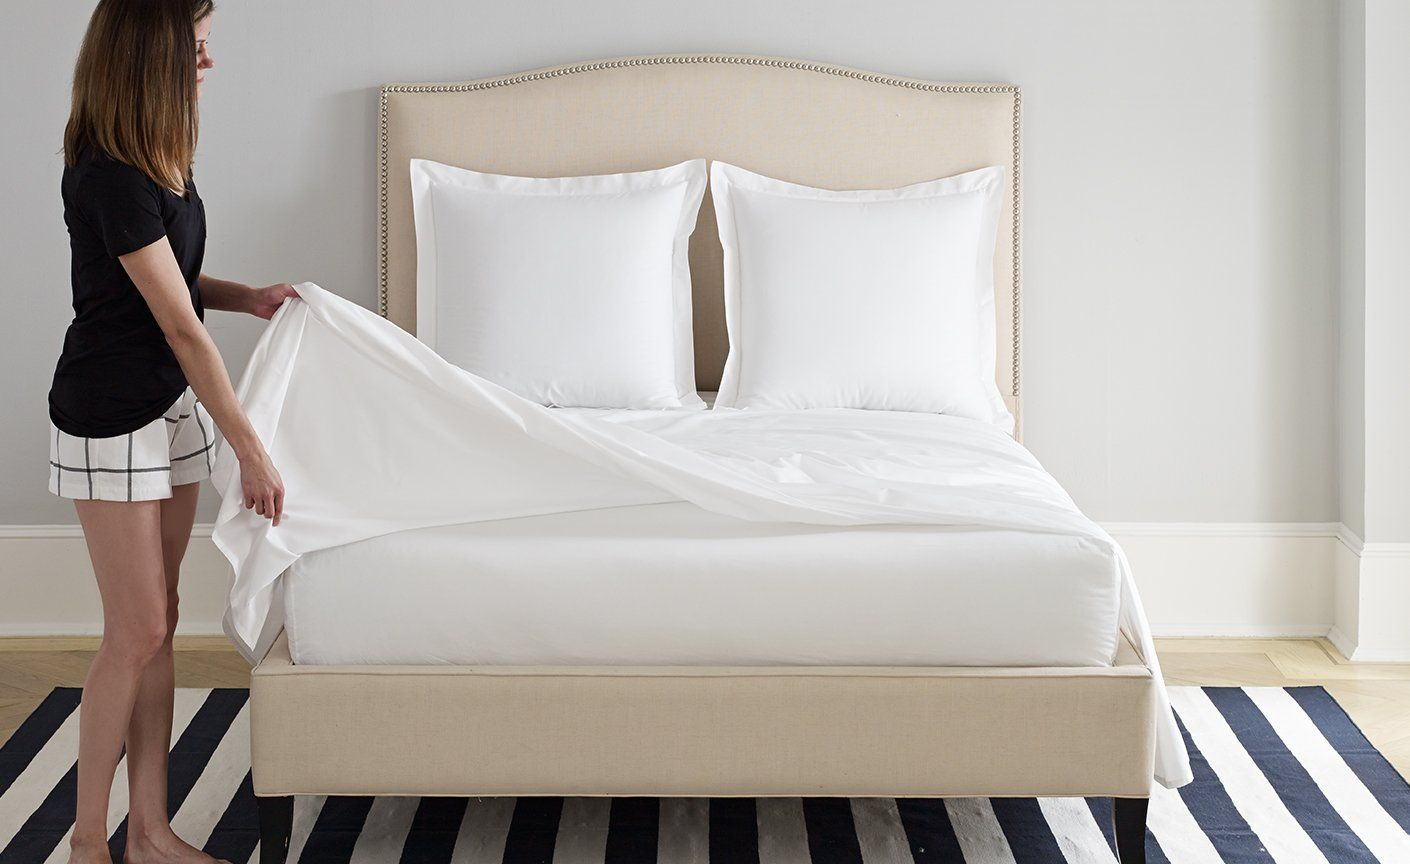 Flat Sheet Vs Fitted Sheet Bed Sheets Sale Bed Sheets White Bed Sheets